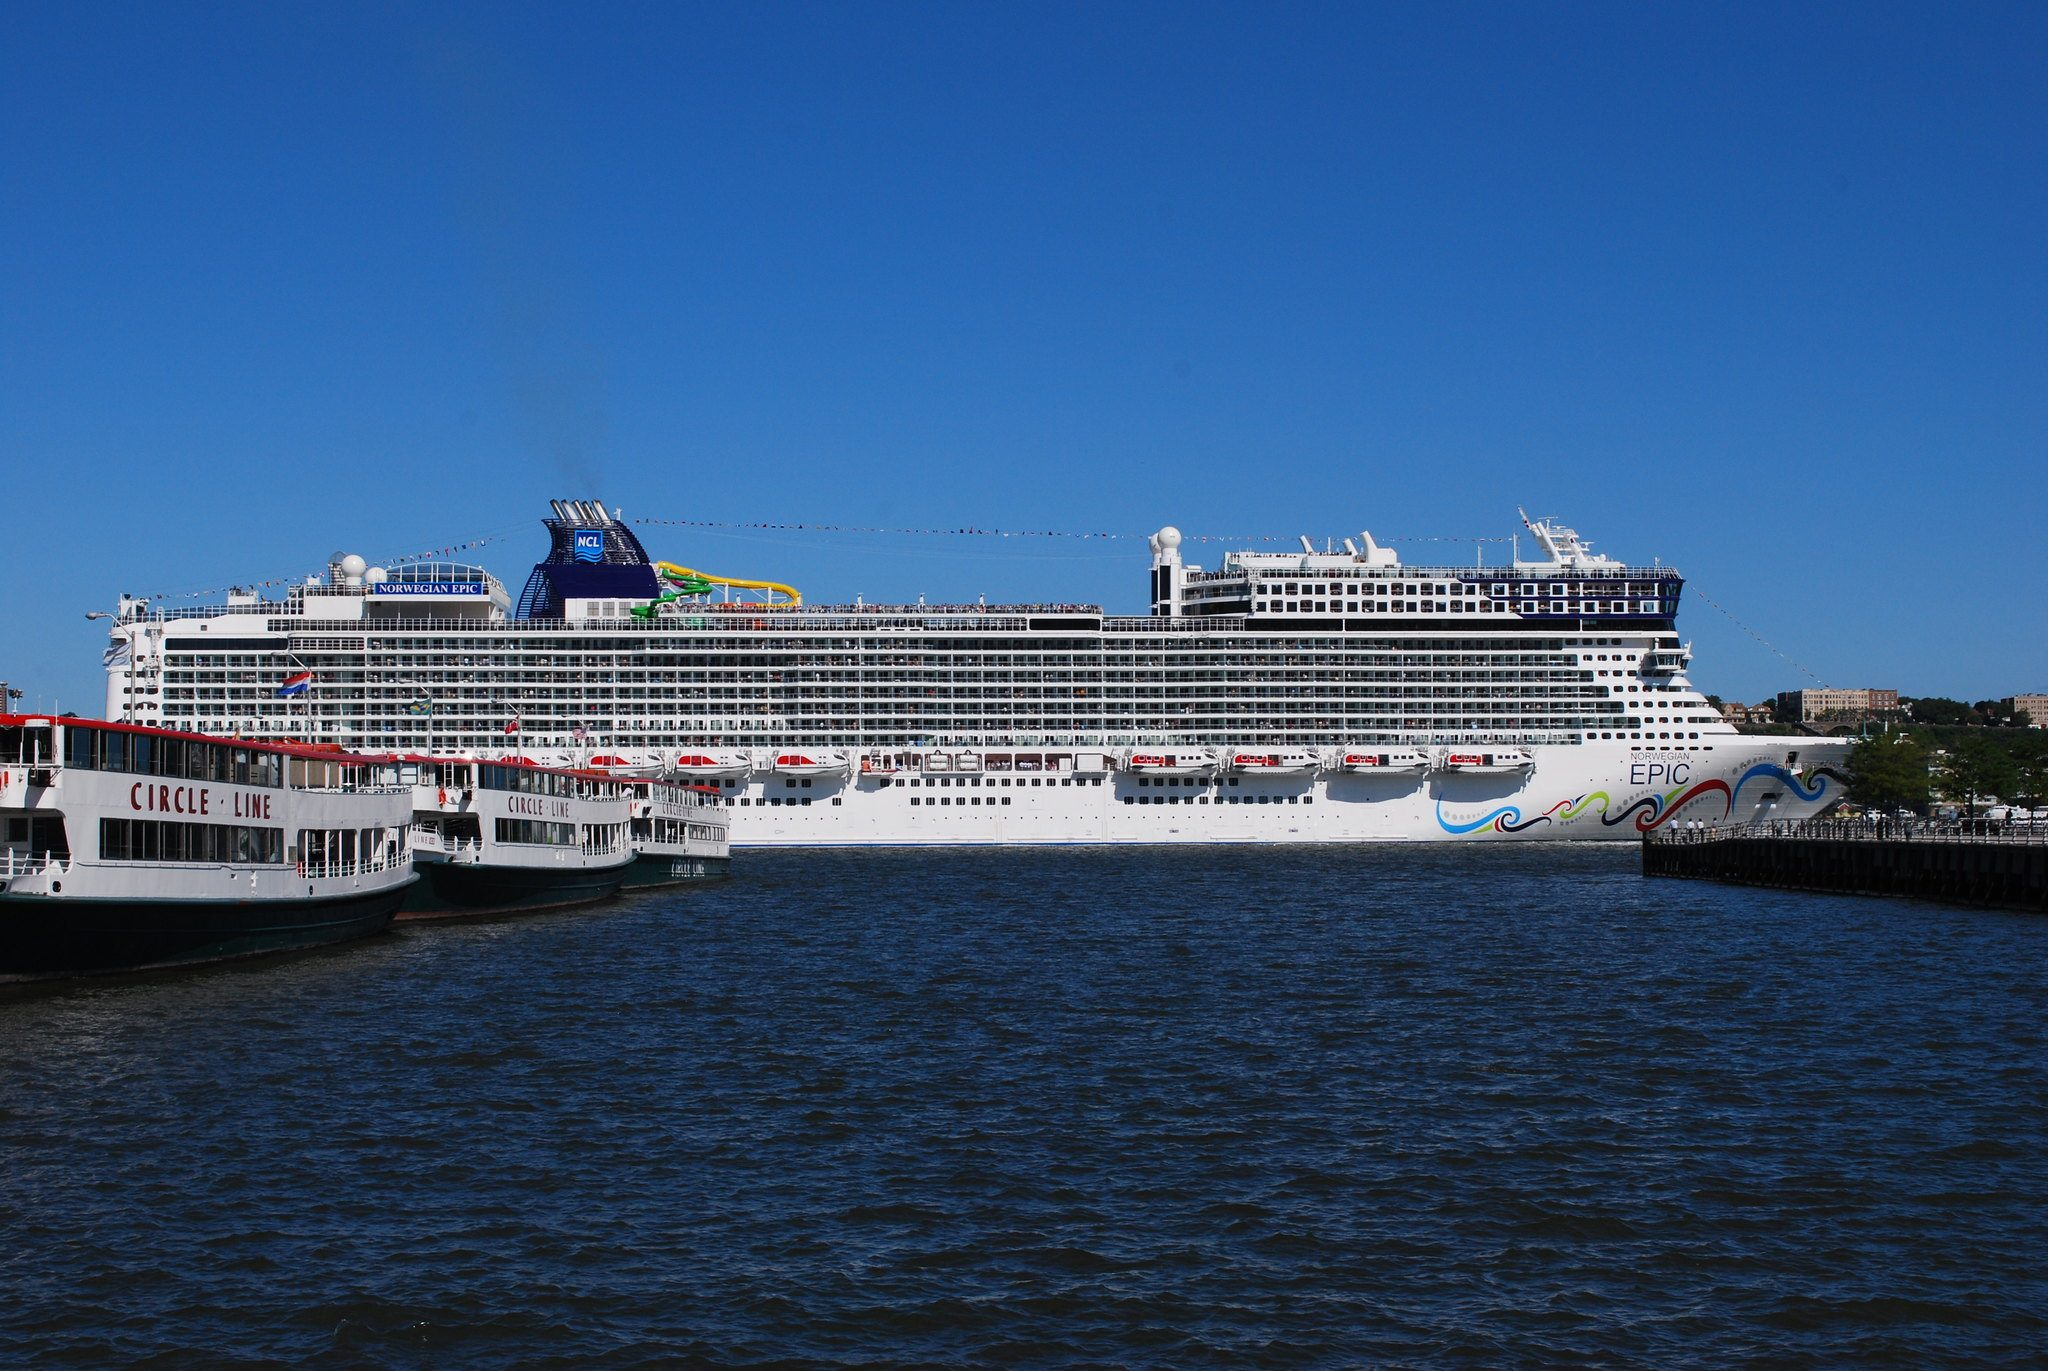 List of Cruise Lines that Offer Rebooking and Refund4